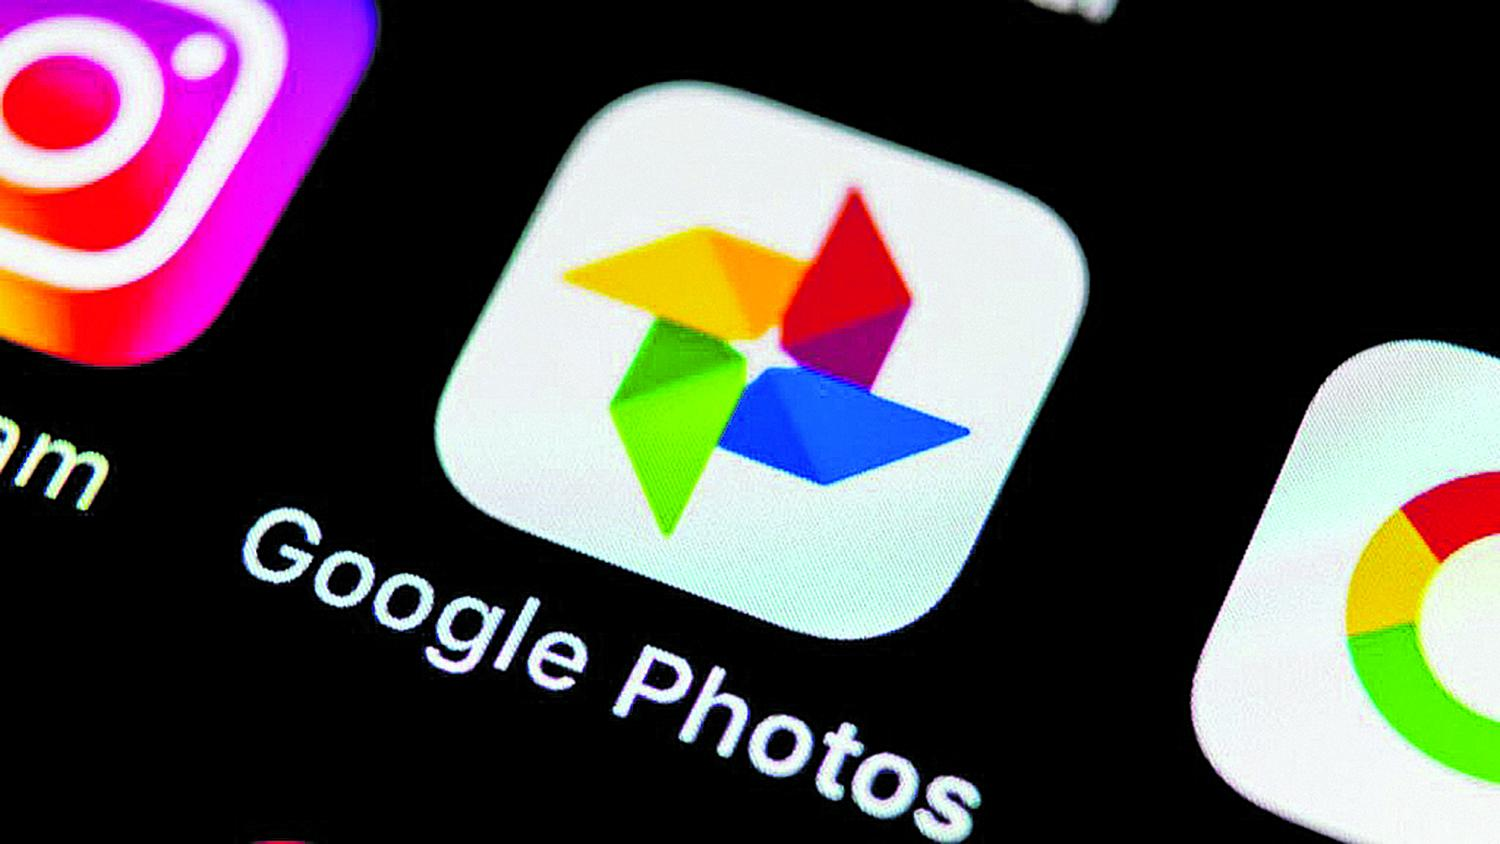 Google Photos is no longer free: Starting in June, users will have to pay